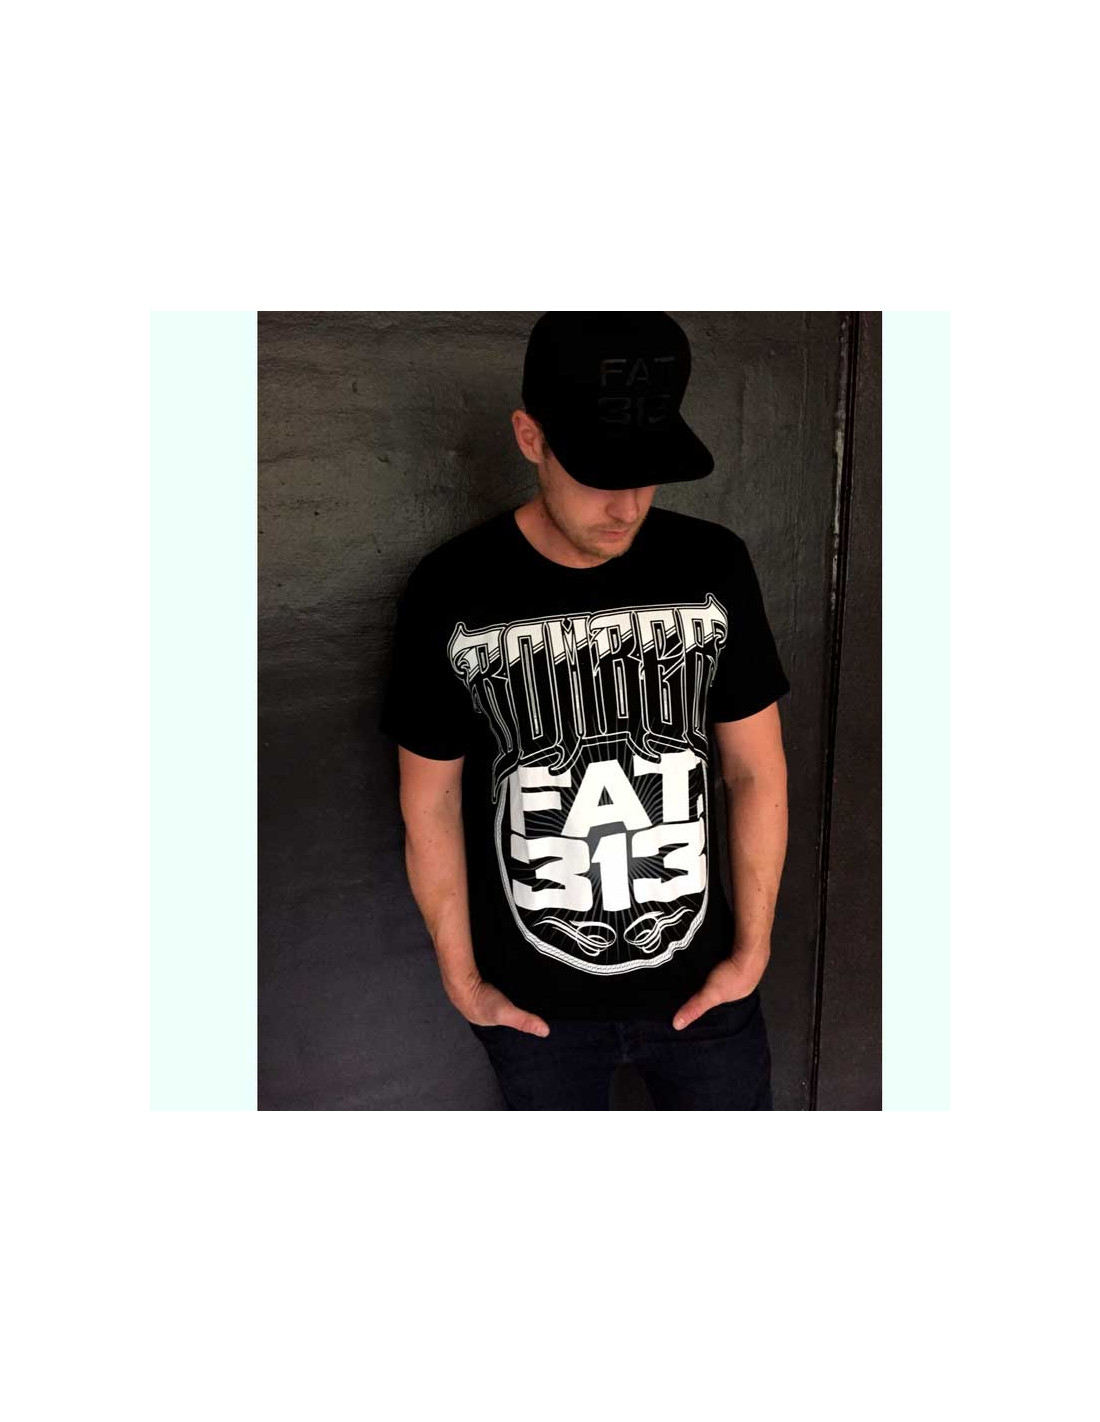 FAT.313 Bomber Big Fat Tee Black